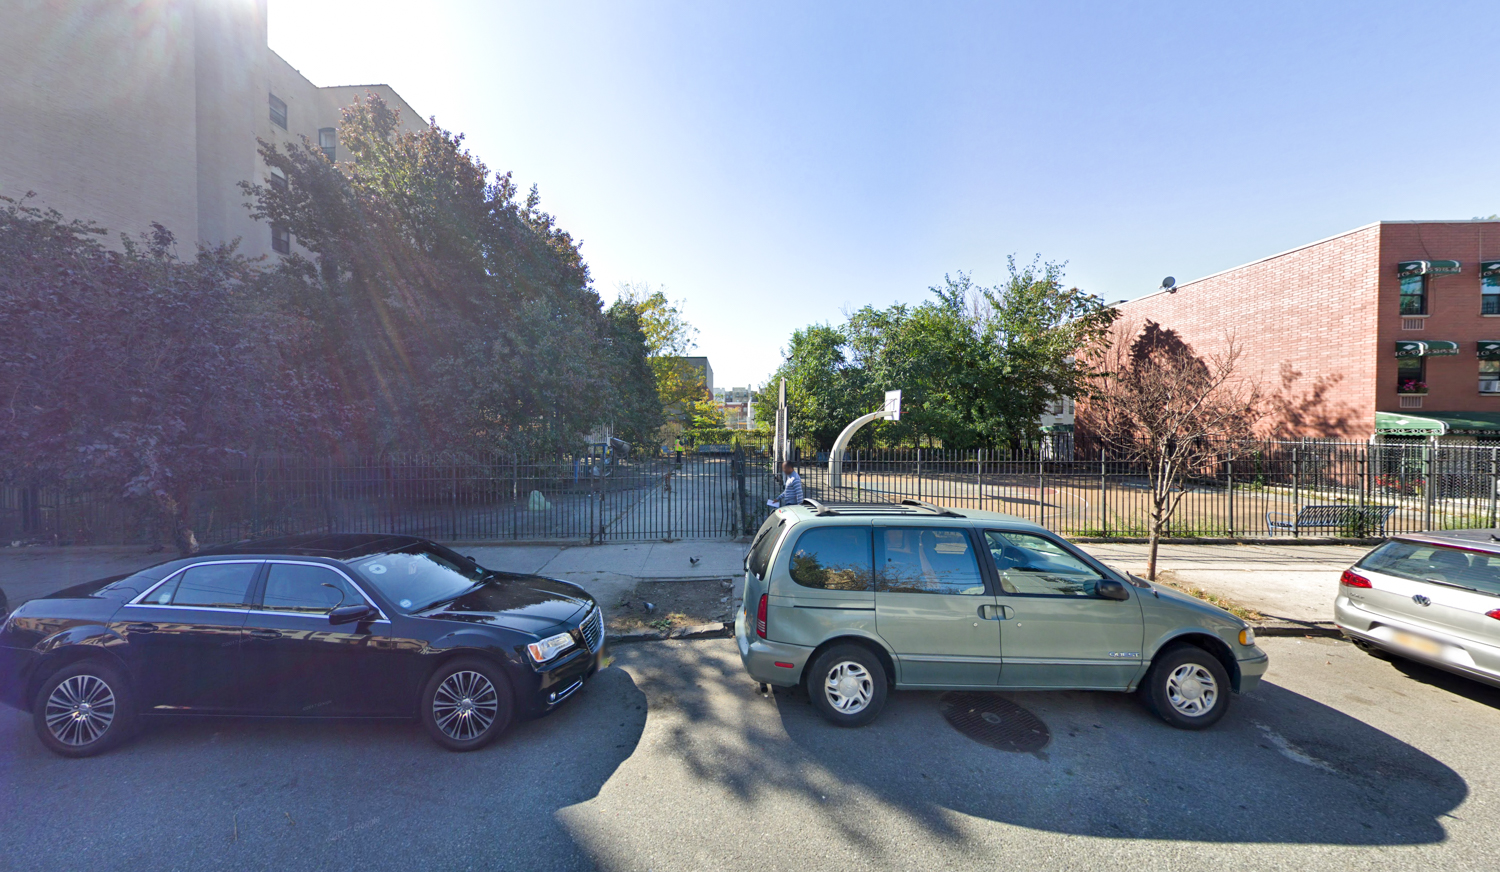 448 East 143rd Street, via Google Maps